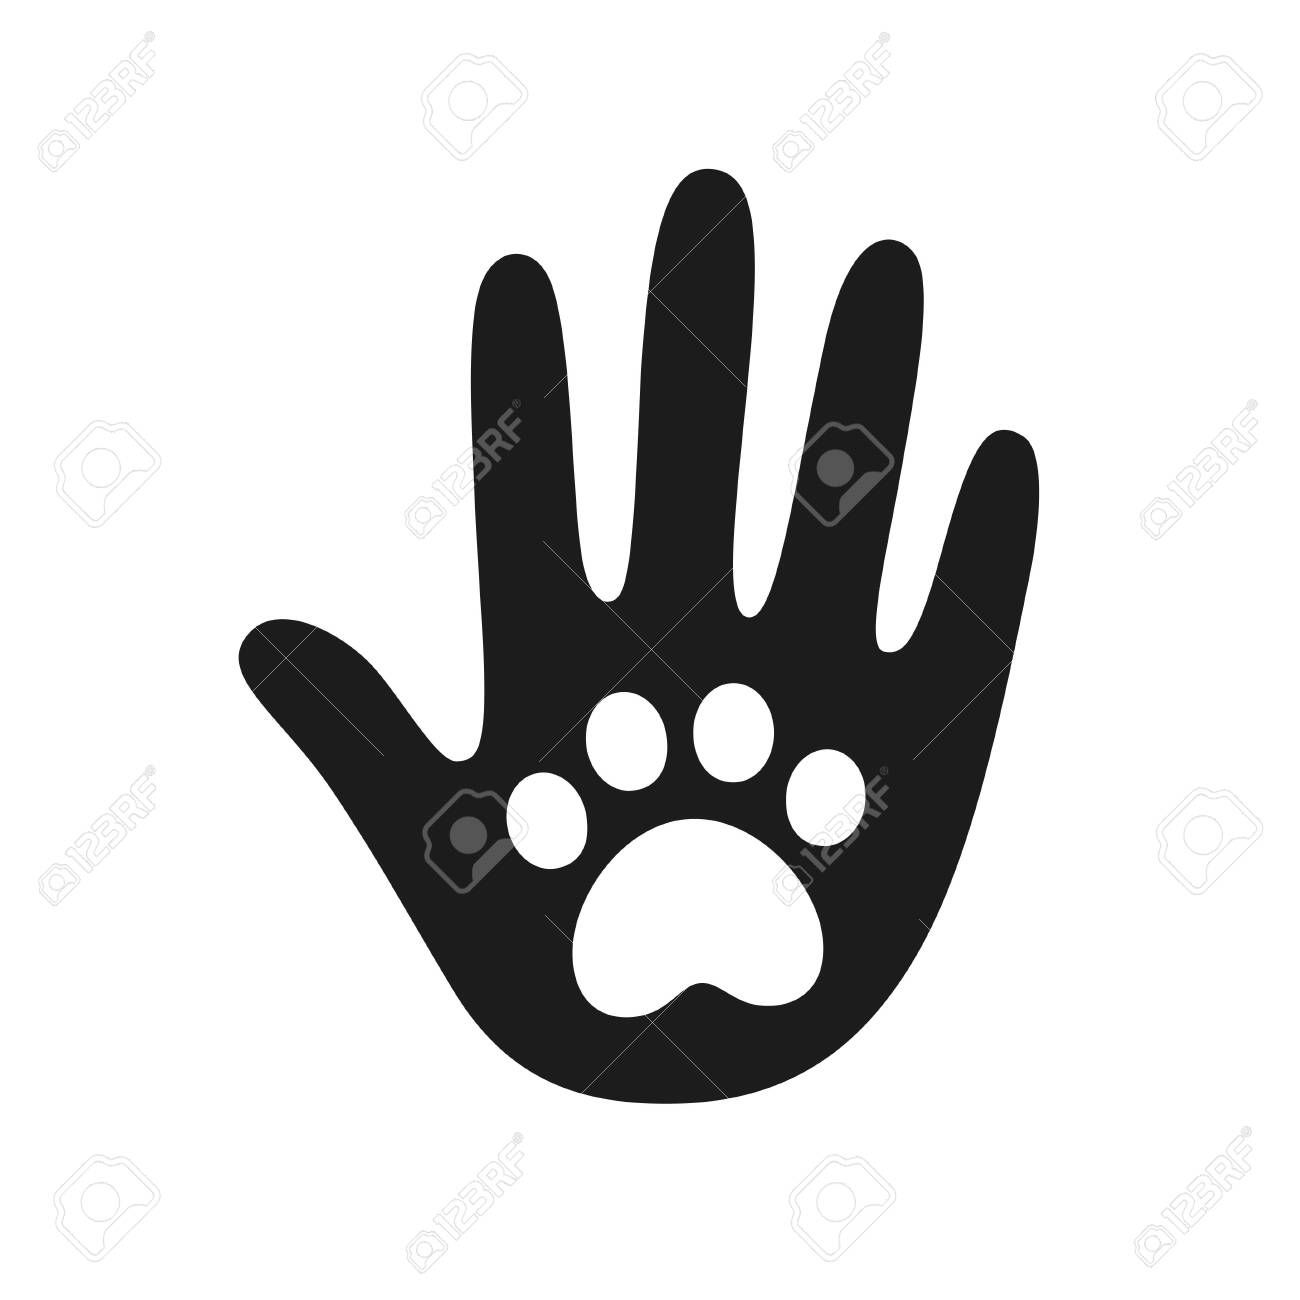 133829895-human-hand-palm-with-dog-or-cat-paw-print-symbol-veterinary-pet-care-shelter-adoption-or-animal-char